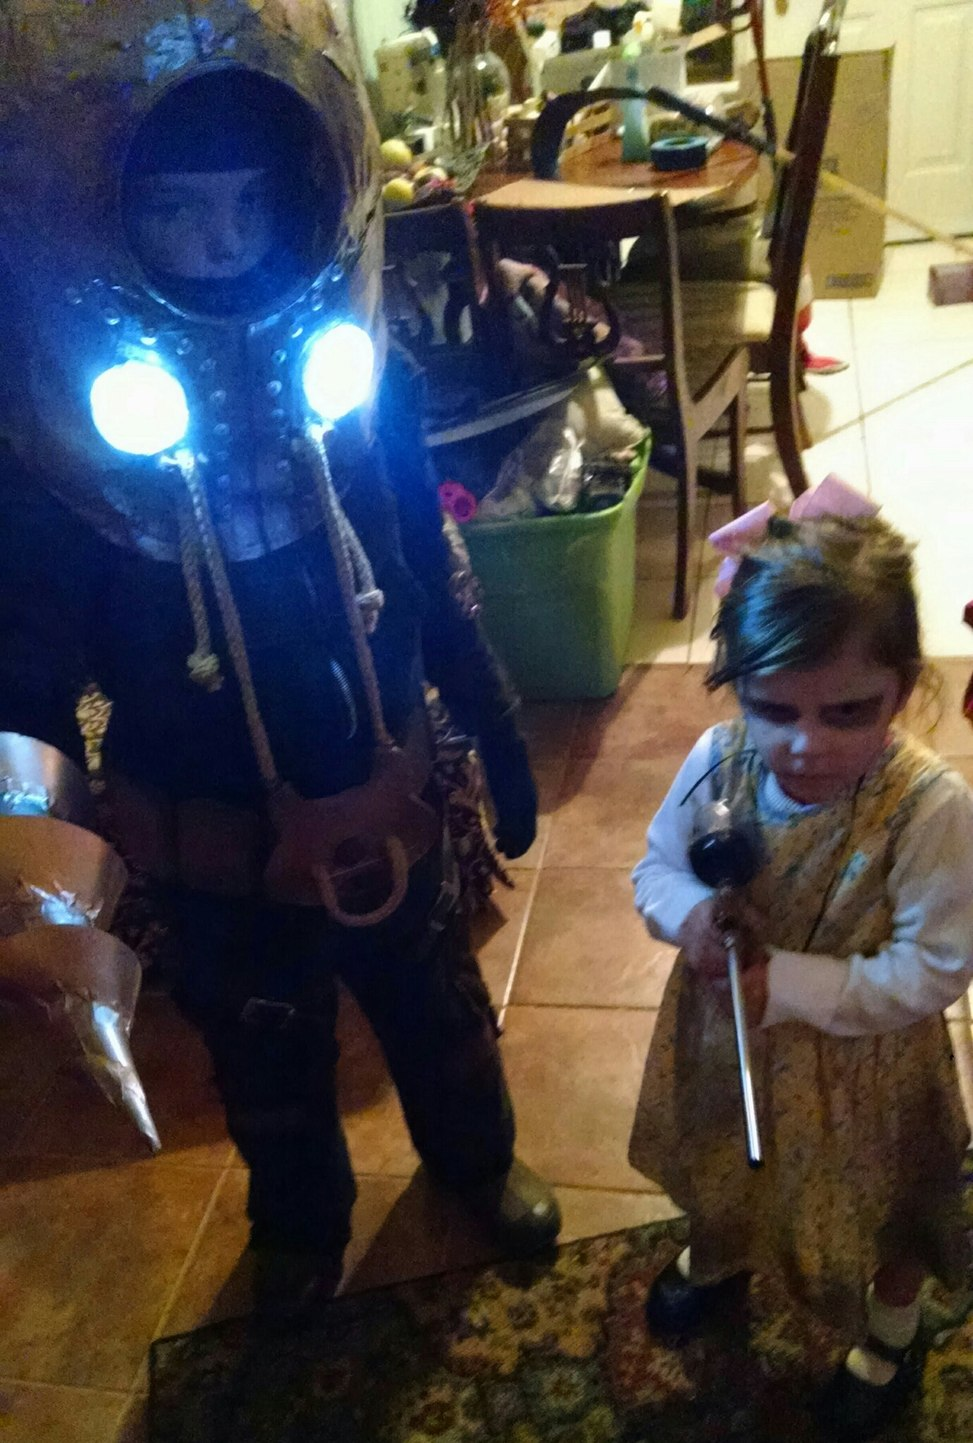 My kids on Halloween! - meme